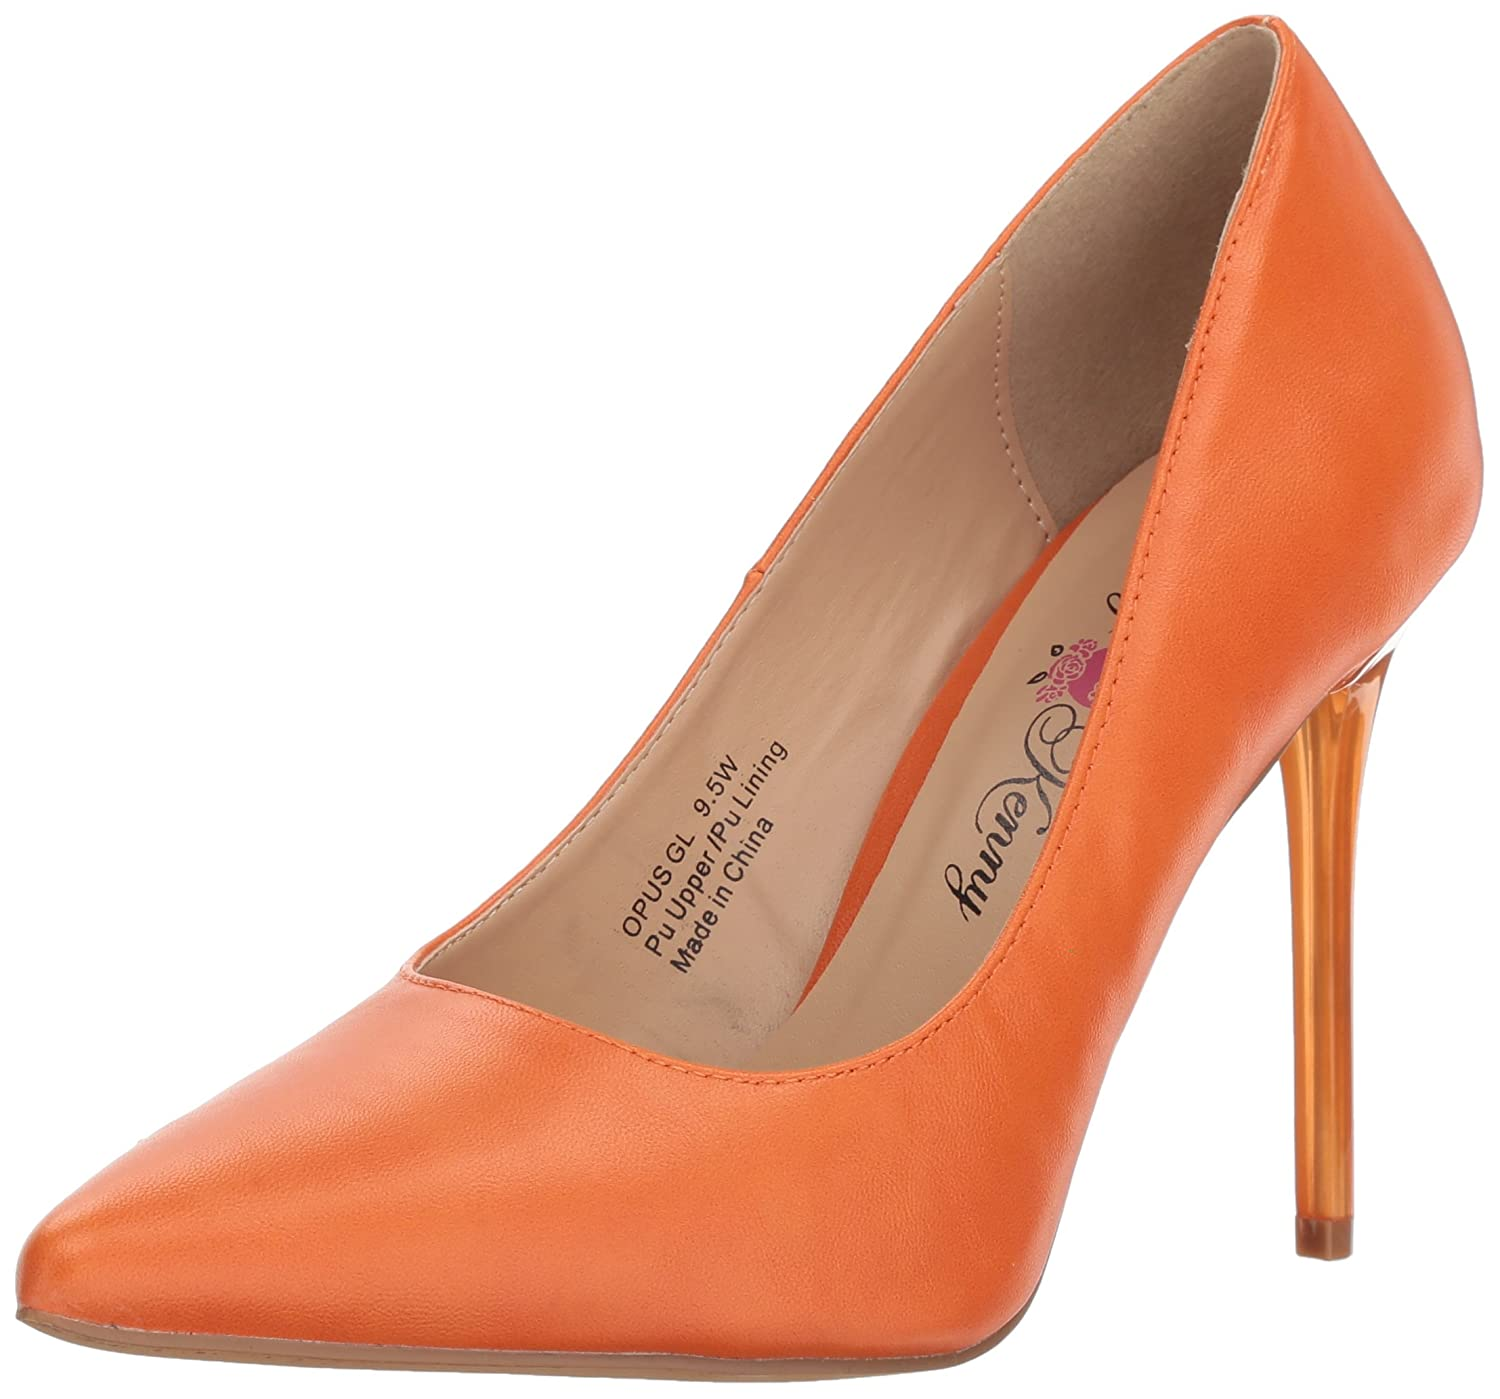 Penny Loves Kenny Women's Opus Gl Pump B076FDWWXY 8.5 B(M) US|Orange